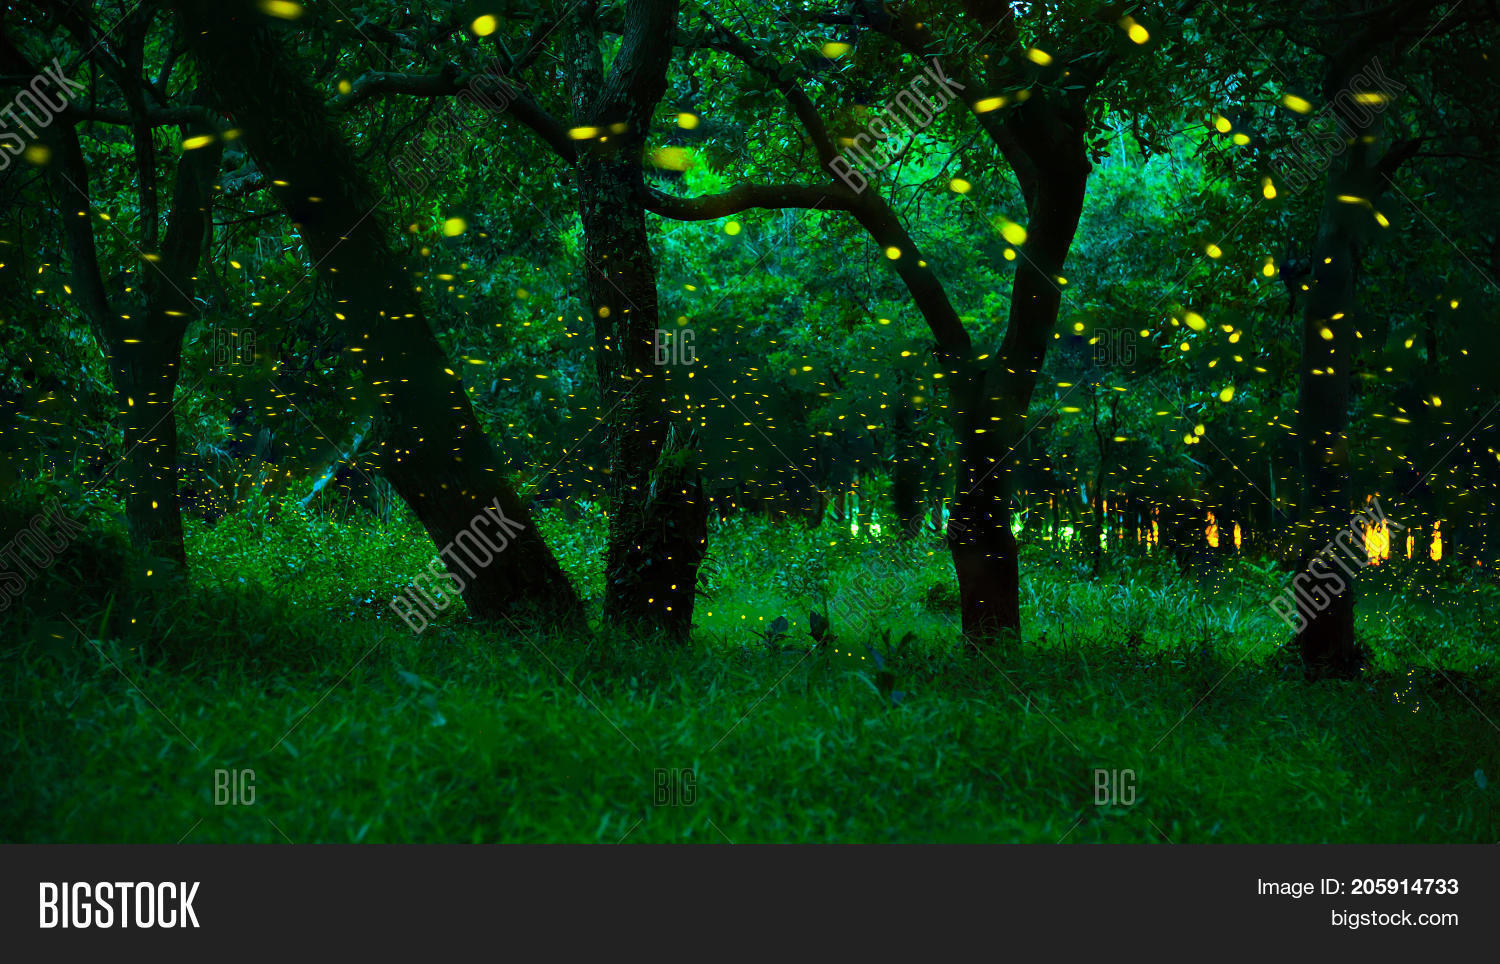 Firefly Flying Forest. Fireflies Image  for Firefly Insect At Night Wallpaper  70ref